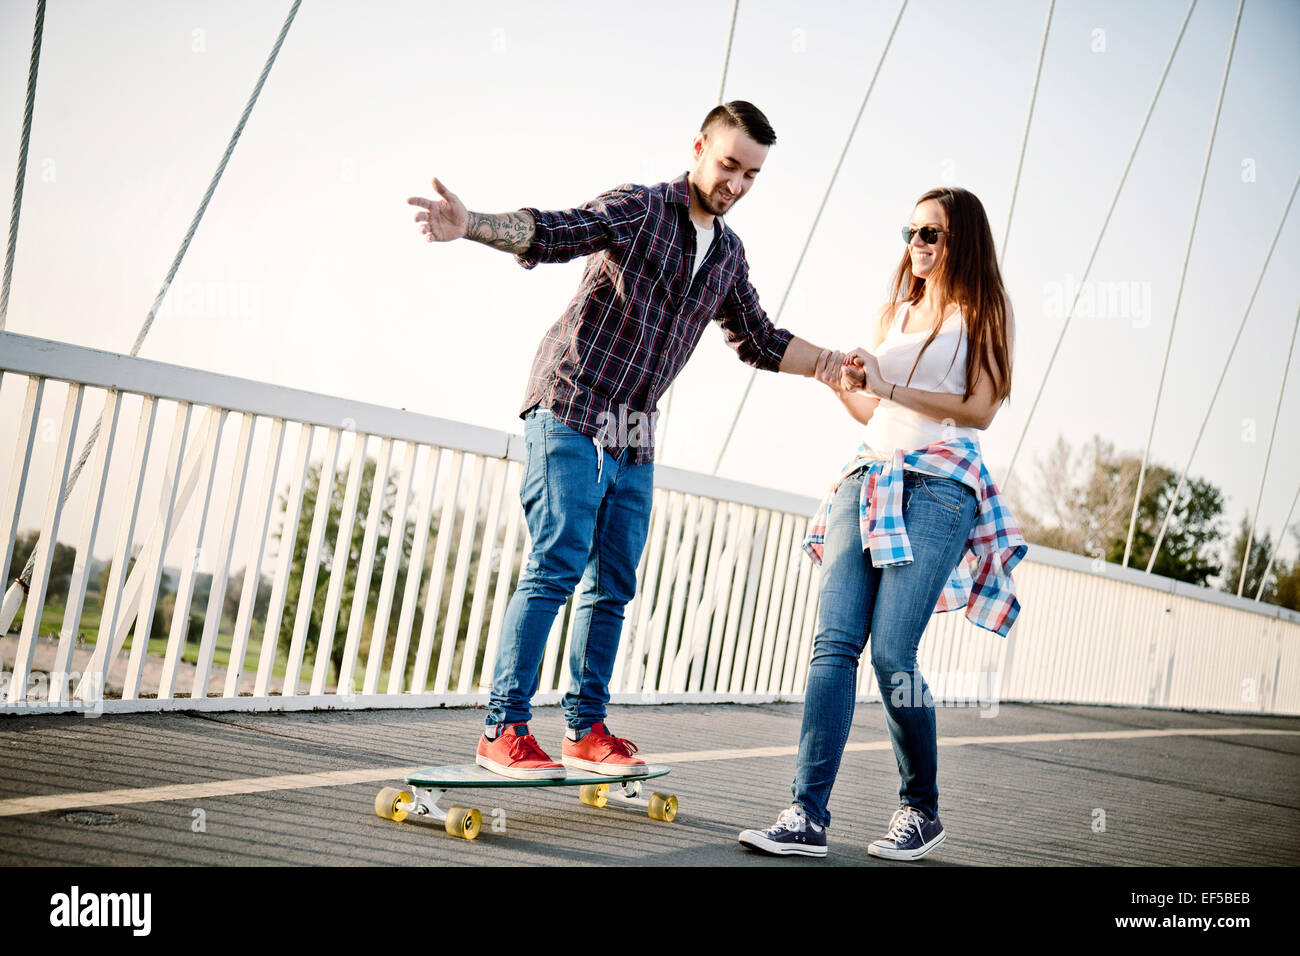 Young man balancing on skateboard, woman assisting - Stock Image